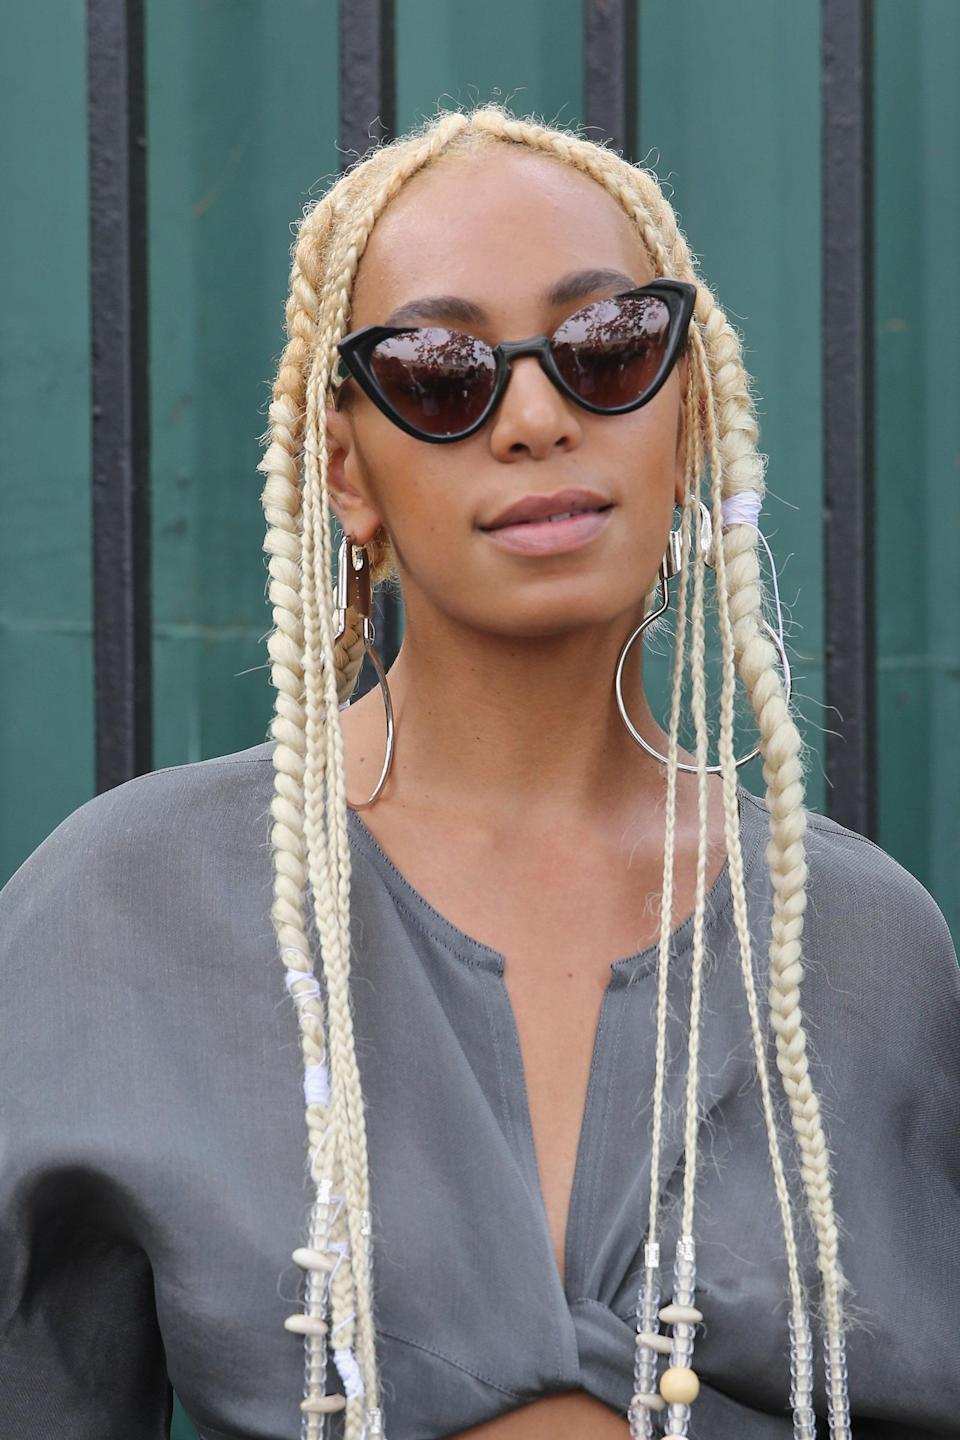 Platinum looks even edgier if it's slightly on the yellow side, which it gives it a do-it-yourself feel. Braids like Solange's amp up the cool factor even more.